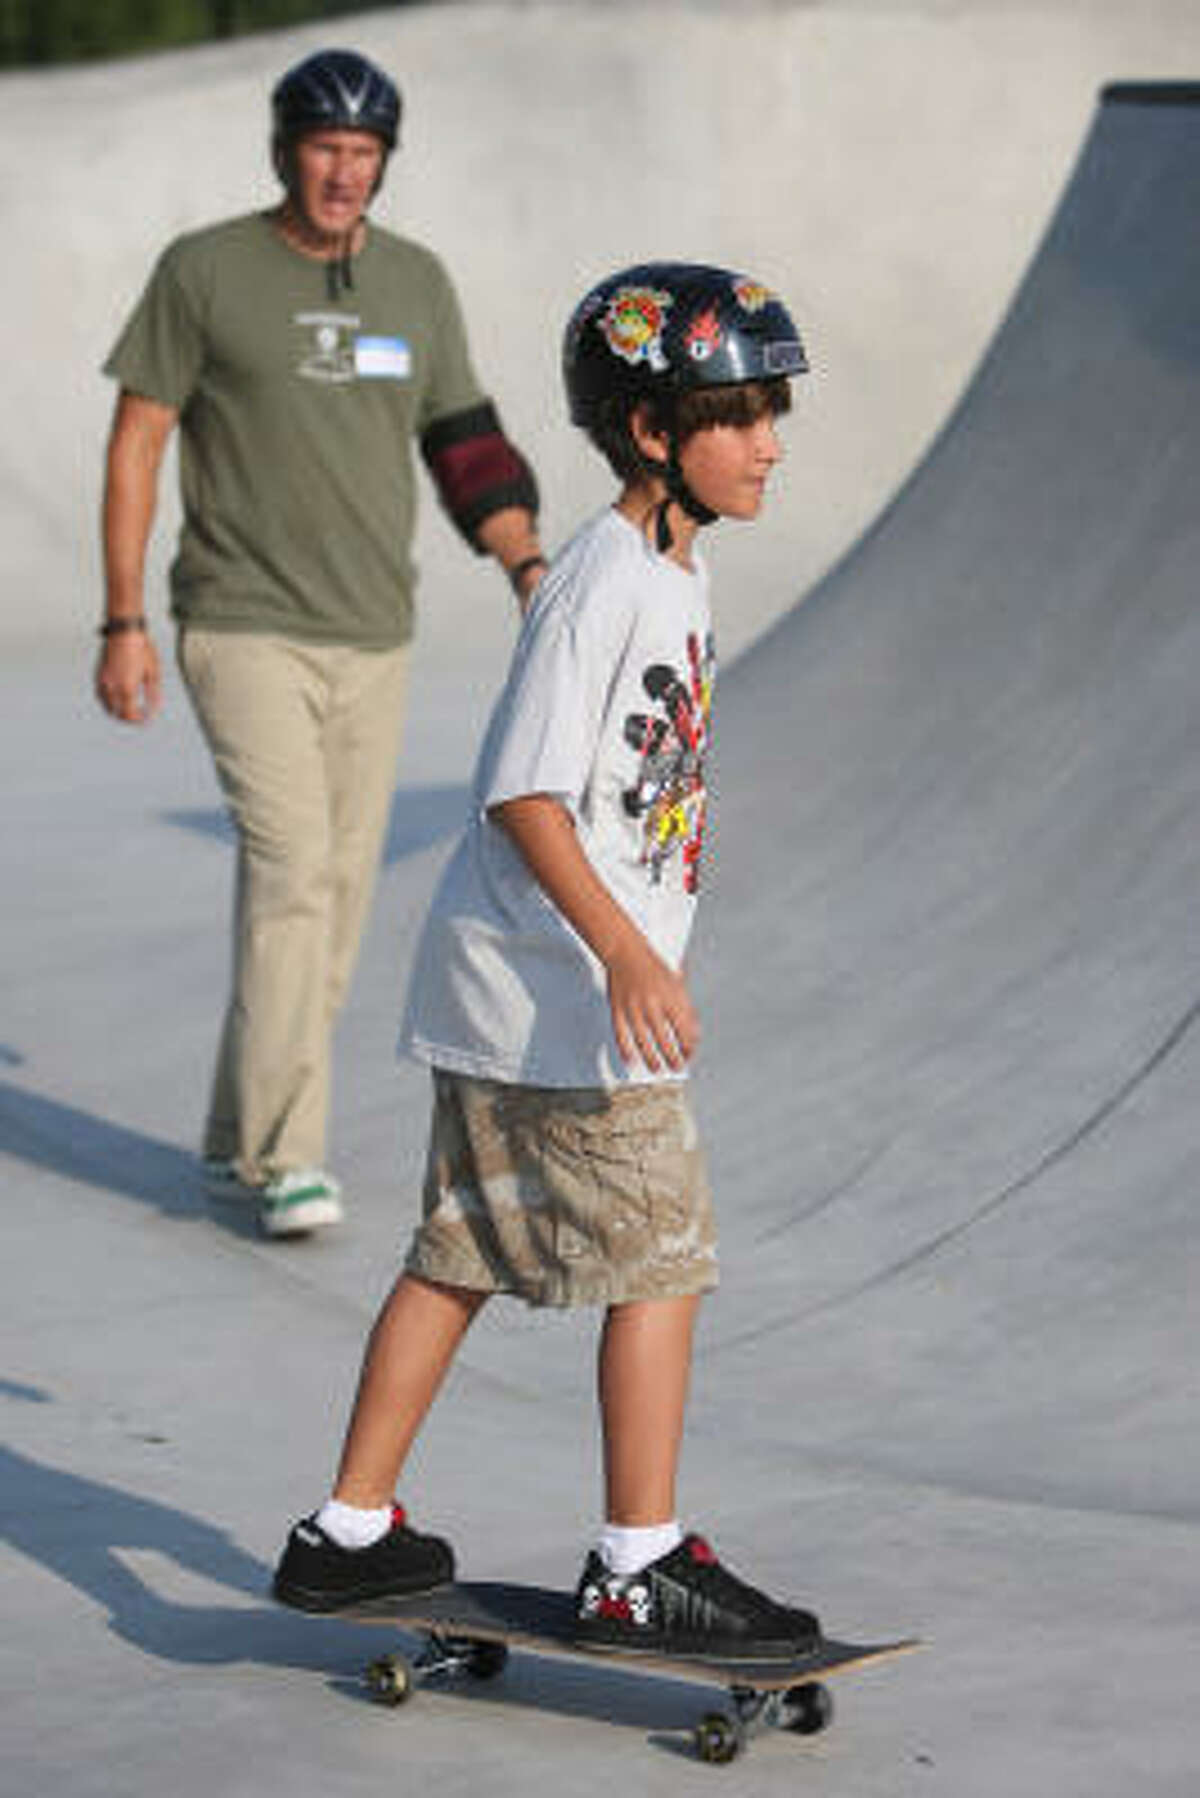 Skating, once a wild thing, is becoming a wholesome family activity, encouraged by the City of Houston Parks Department. (Shown here: Mike Niemann and Billy Moran at a Jamail skate clinic.)